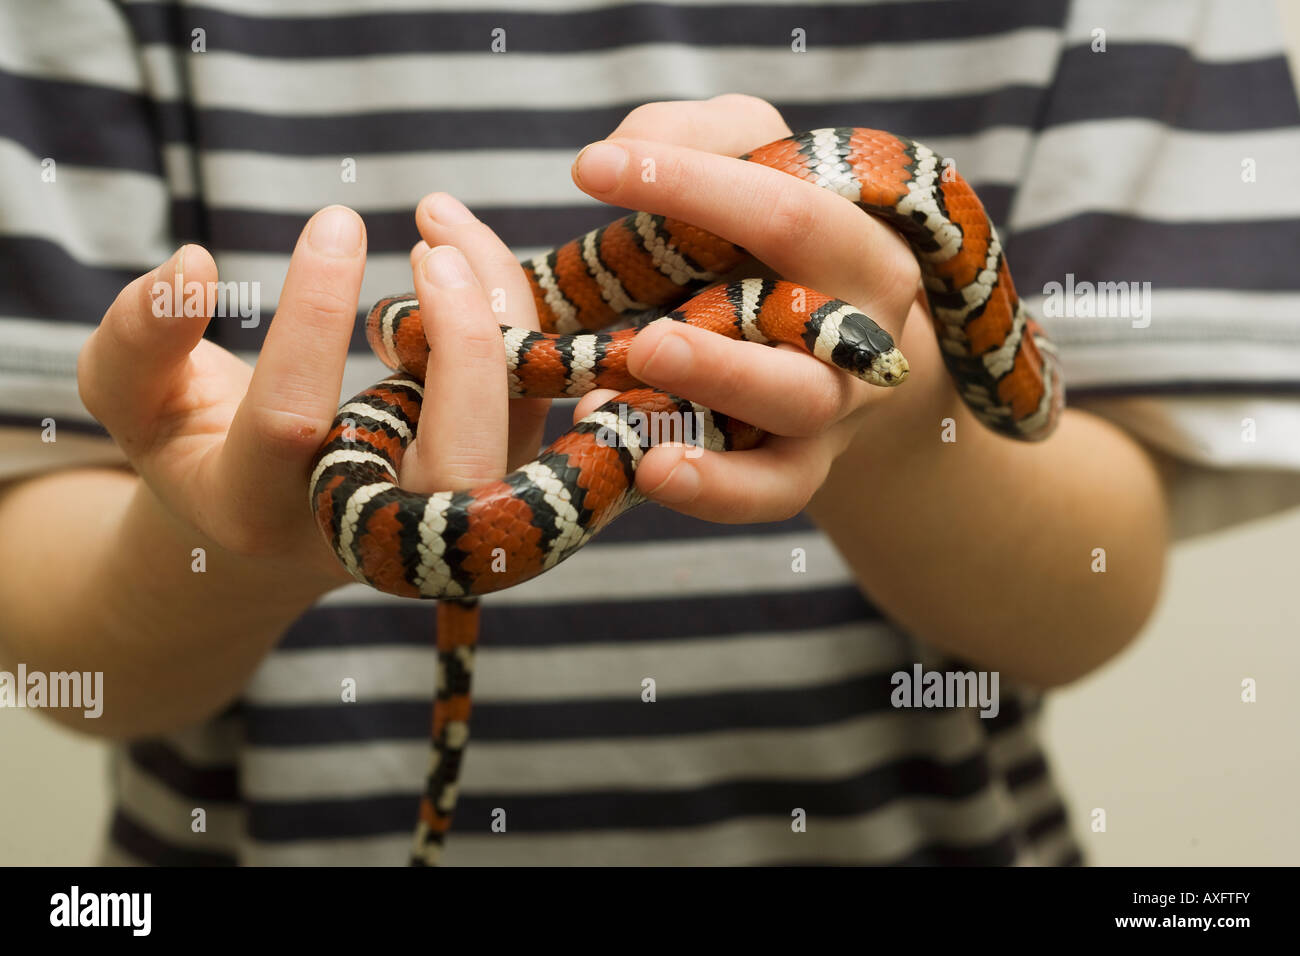 Pet Snake High Resolution Stock Photography And Images Alamy